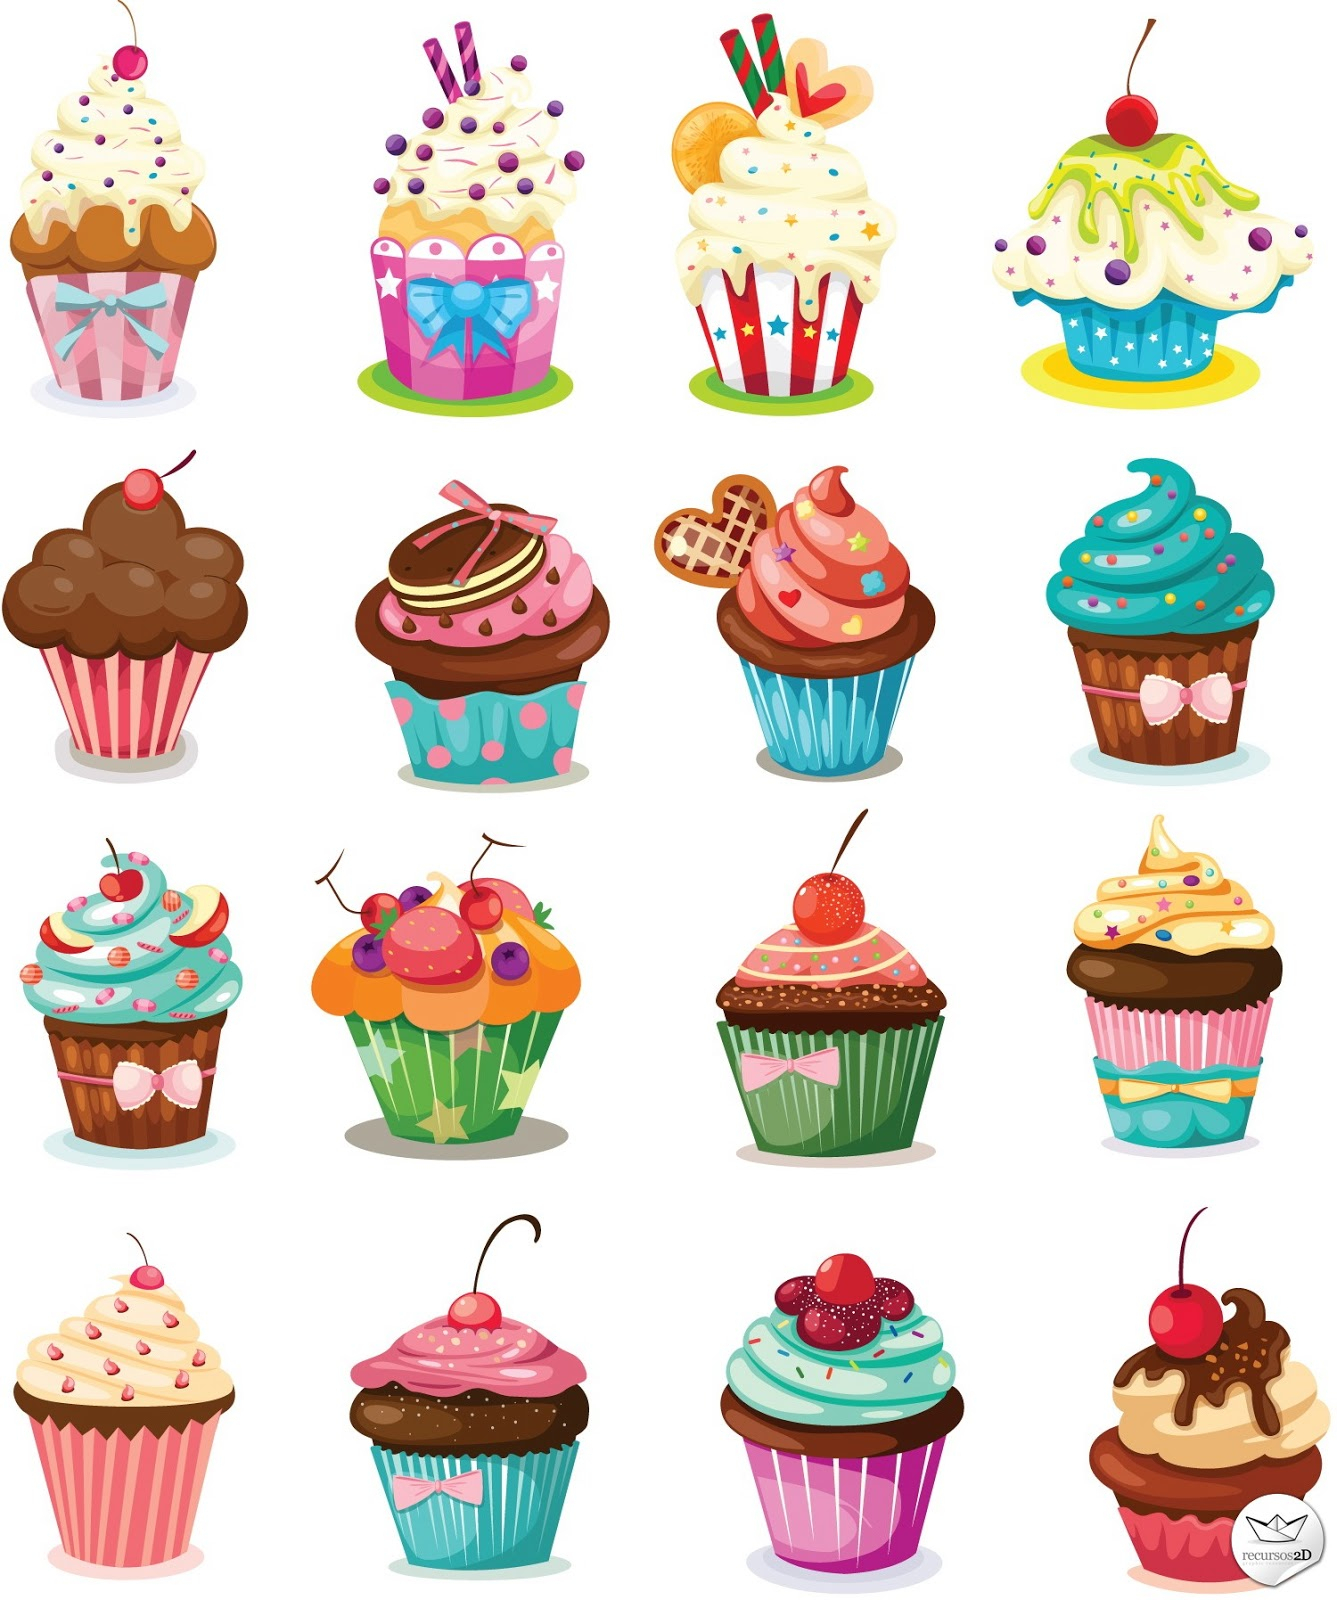 1337x1600 Cute Cupcake Drawings Cupcake Marvelous How To Draw Frosting Cute